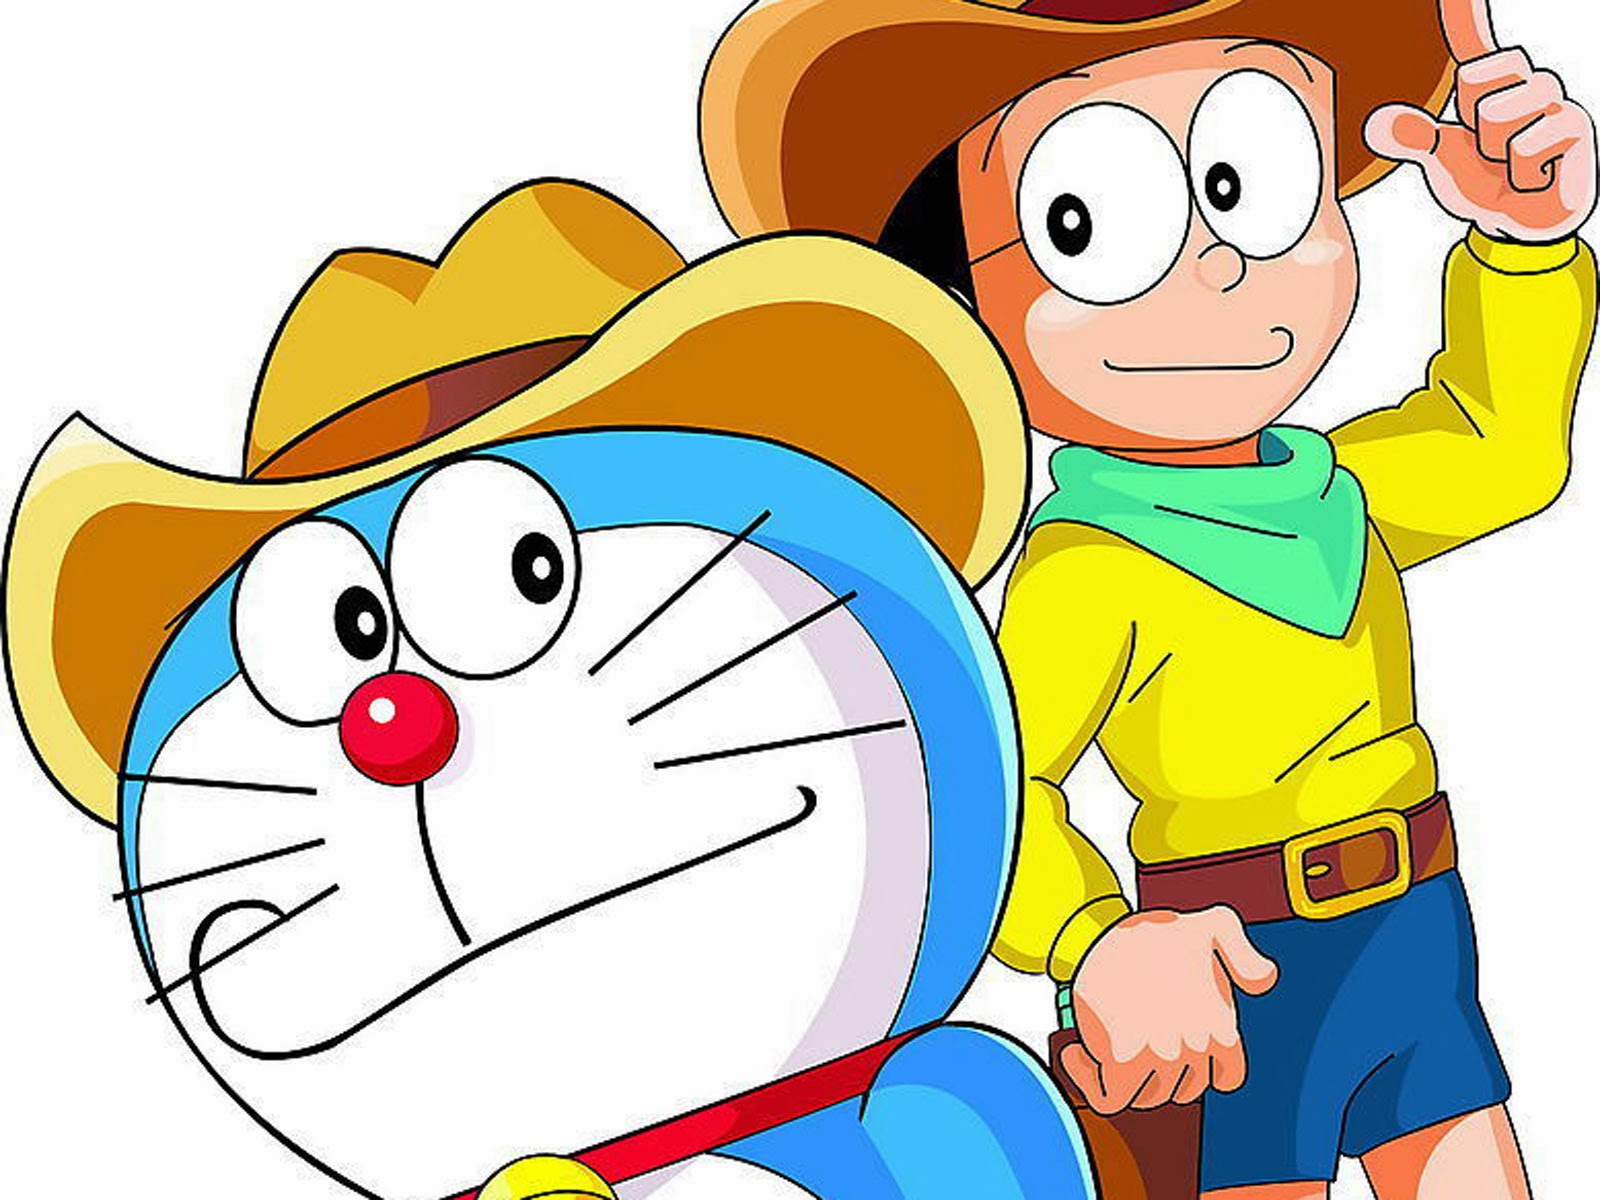 Download 54 Koleksi Gambar Kartun Doraemon Cartoon Gratis